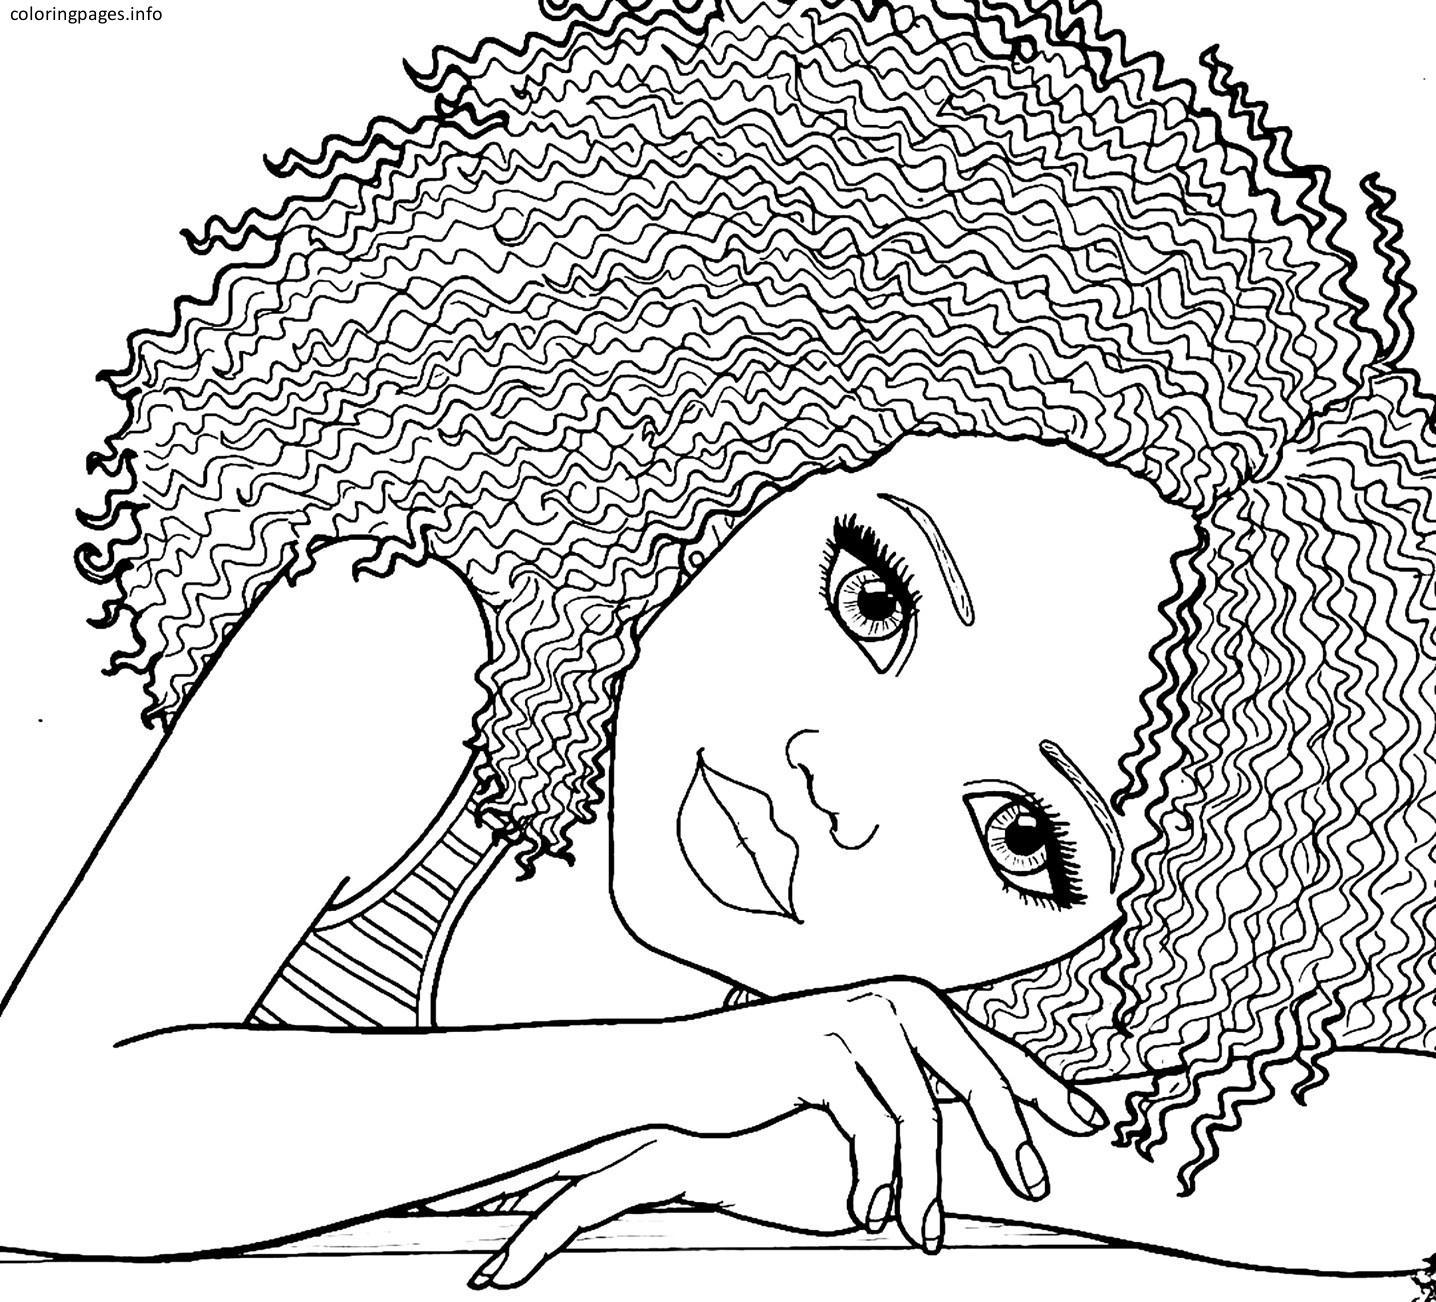 coloring pages of african women pin by candice cade on coloring pages african drawings pages of african coloring women